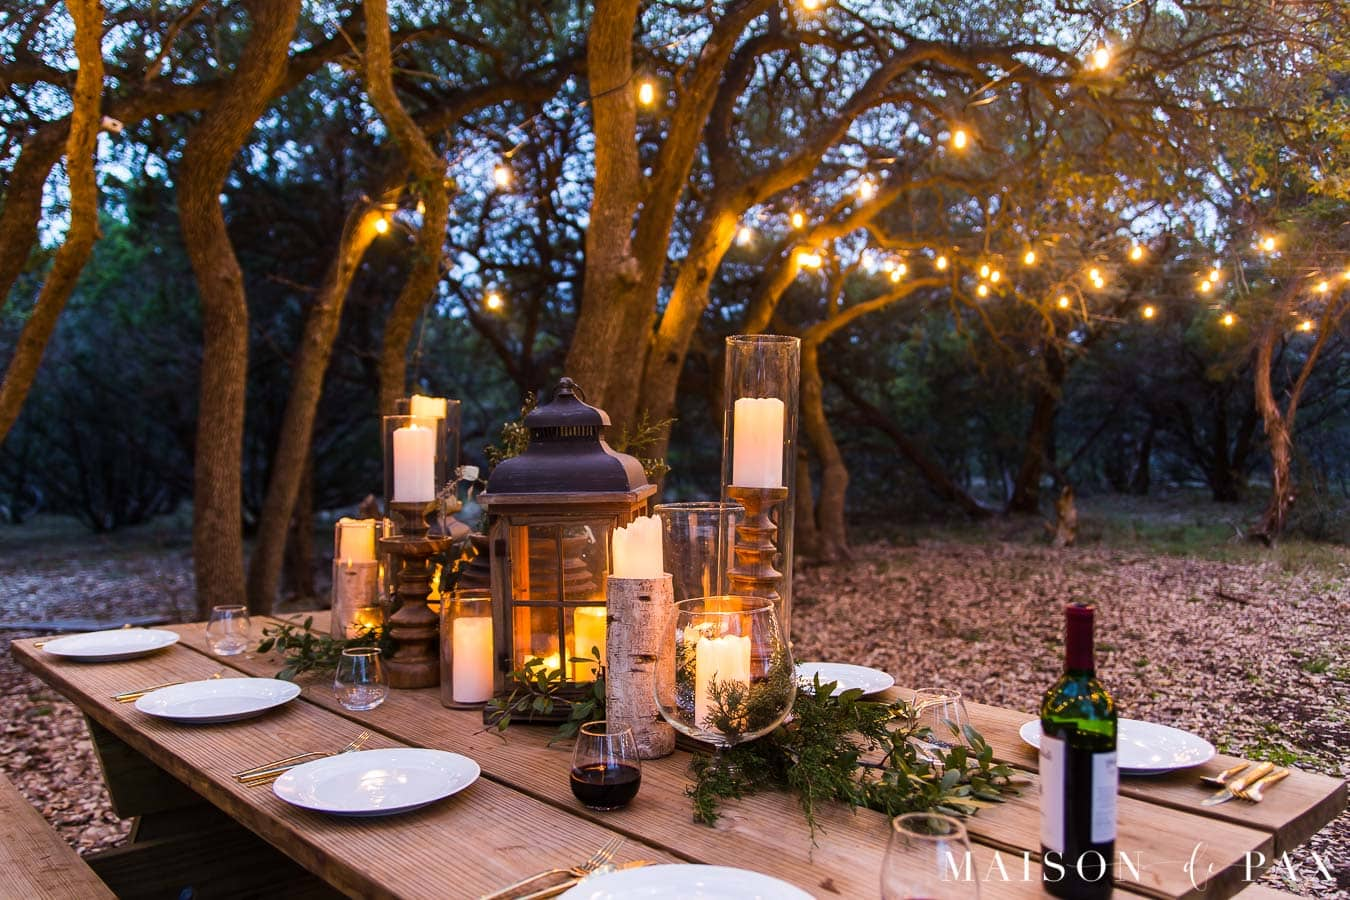 outdoor dining with candles and string lights | Maison de pax